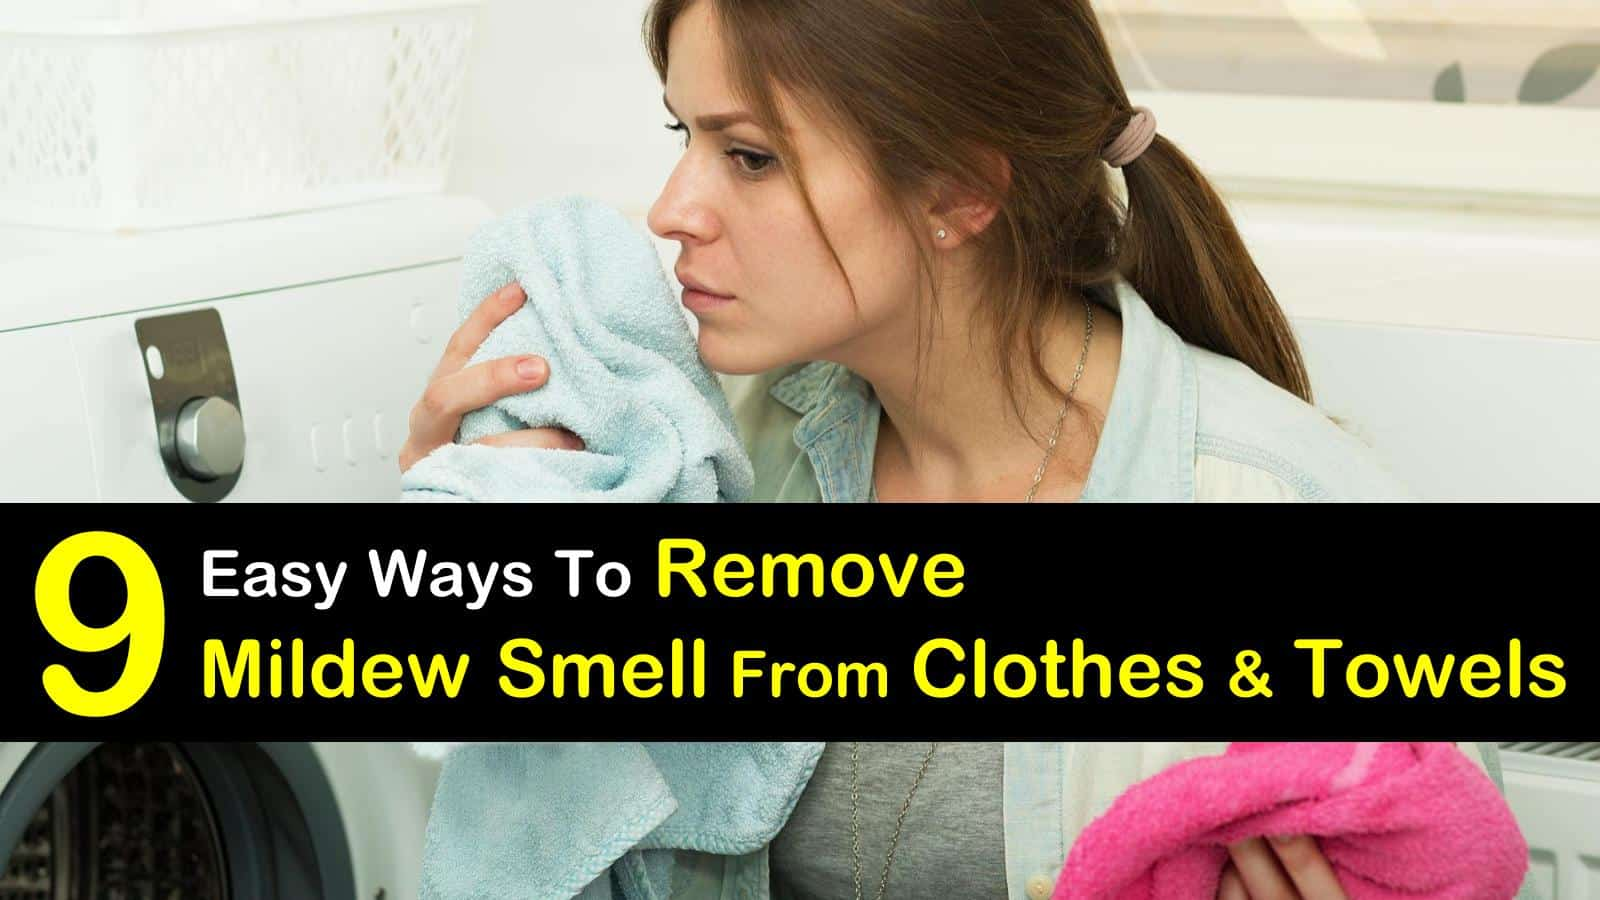 Remove Mildew Smell >> 9 Easy Ways To Remove Mildew Smell From Clothes And Towels